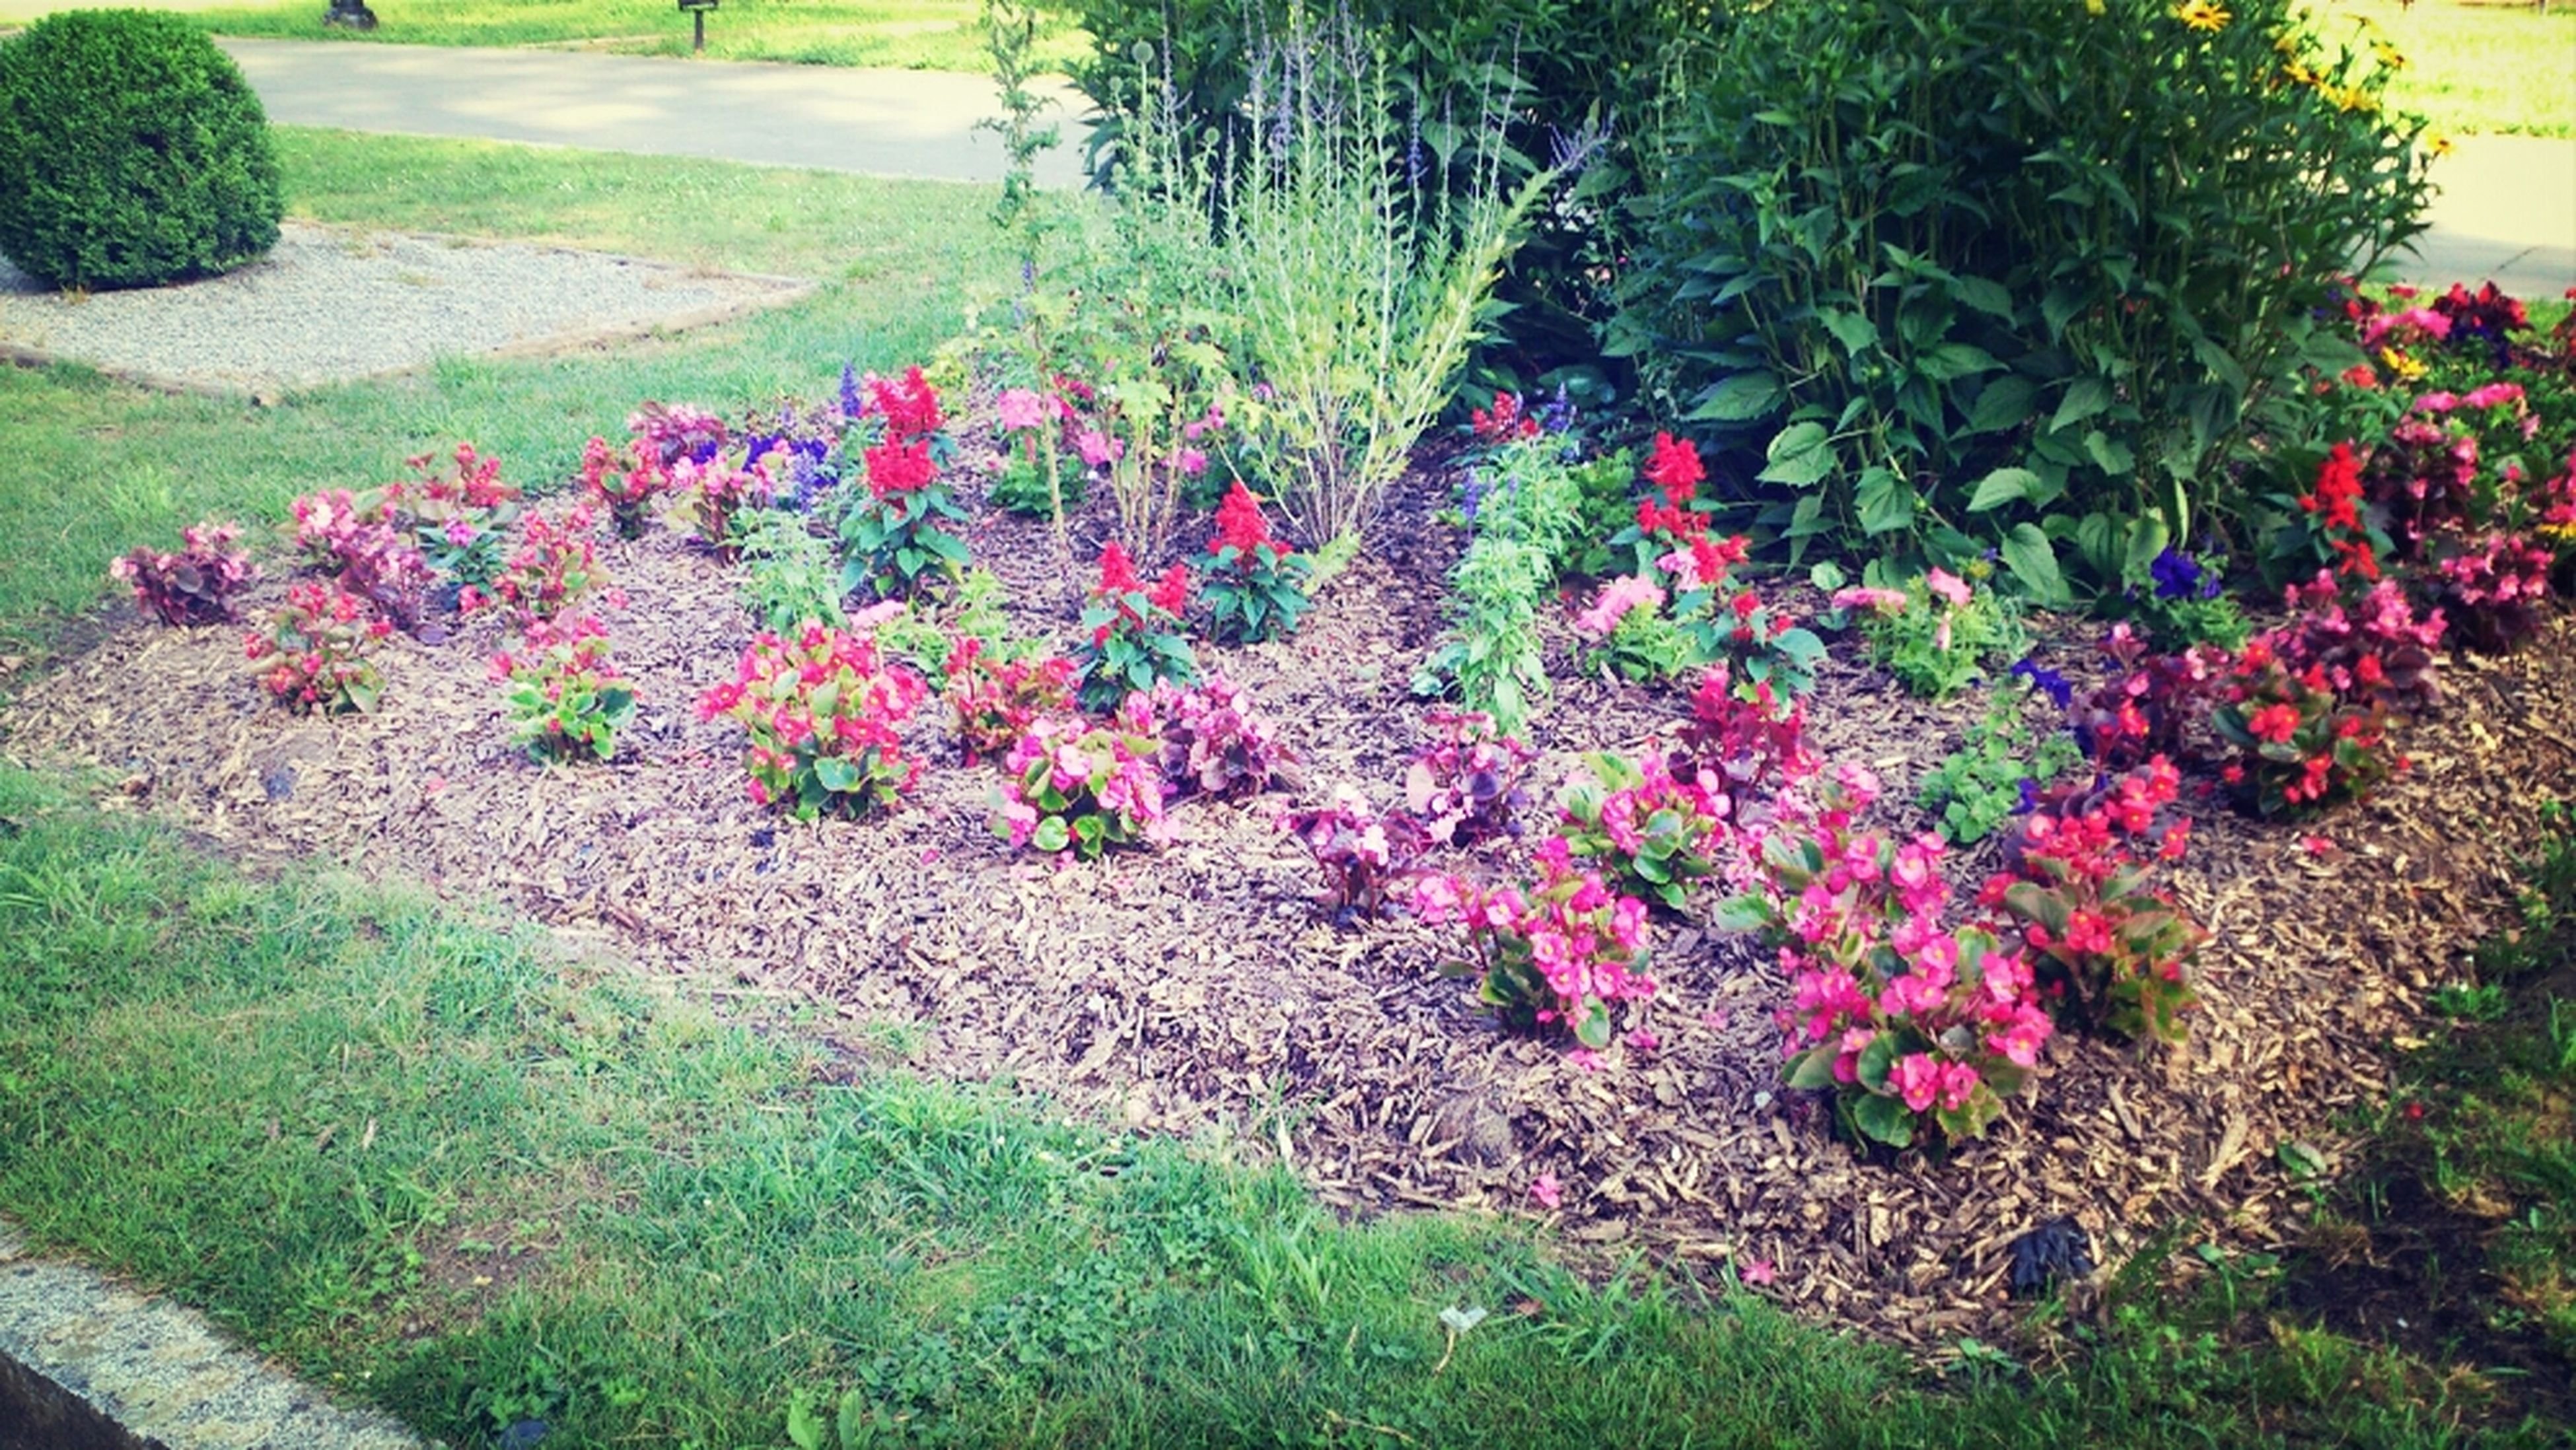 flower, growth, freshness, grass, plant, beauty in nature, field, nature, green color, fragility, tranquility, flowerbed, pink color, blooming, park - man made space, day, in bloom, landscape, outdoors, footpath